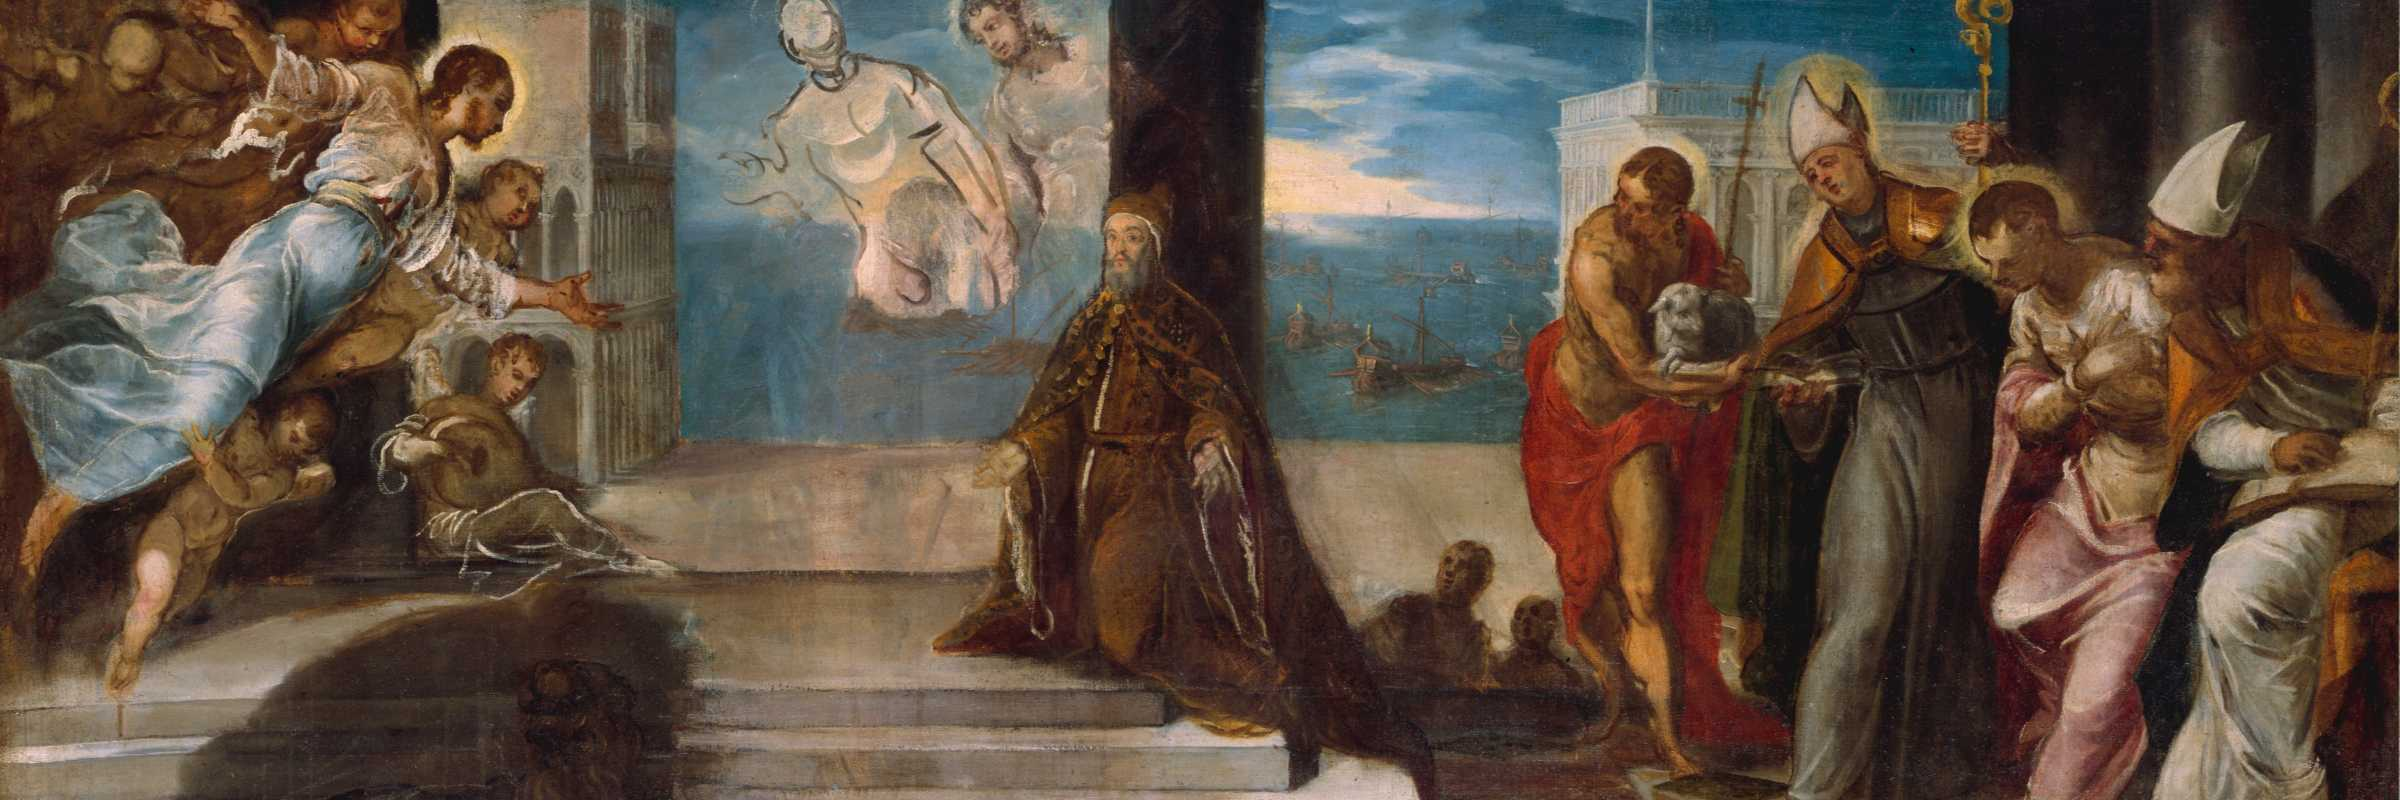 acopo Tintoretto, Doge Alvise Mocenigo presented to the Redeemer, The Met Fifth Avenue New York